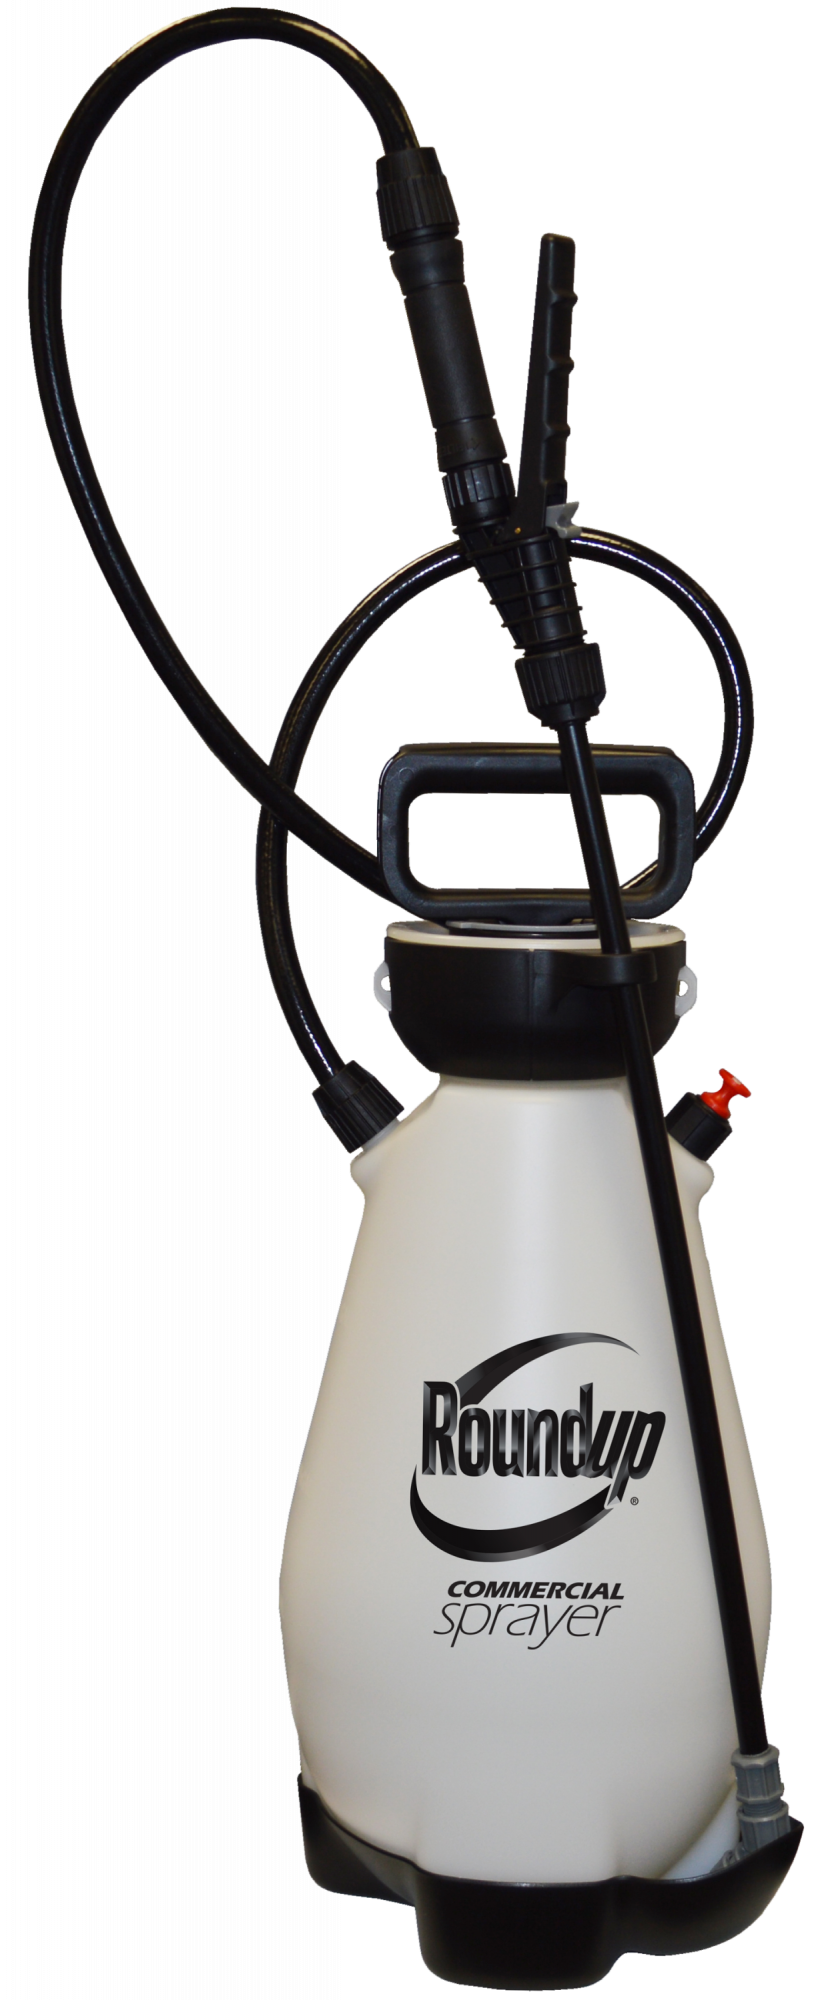 Round Up® Commercial 2 Gal, Premium Sprayer, Model 190427